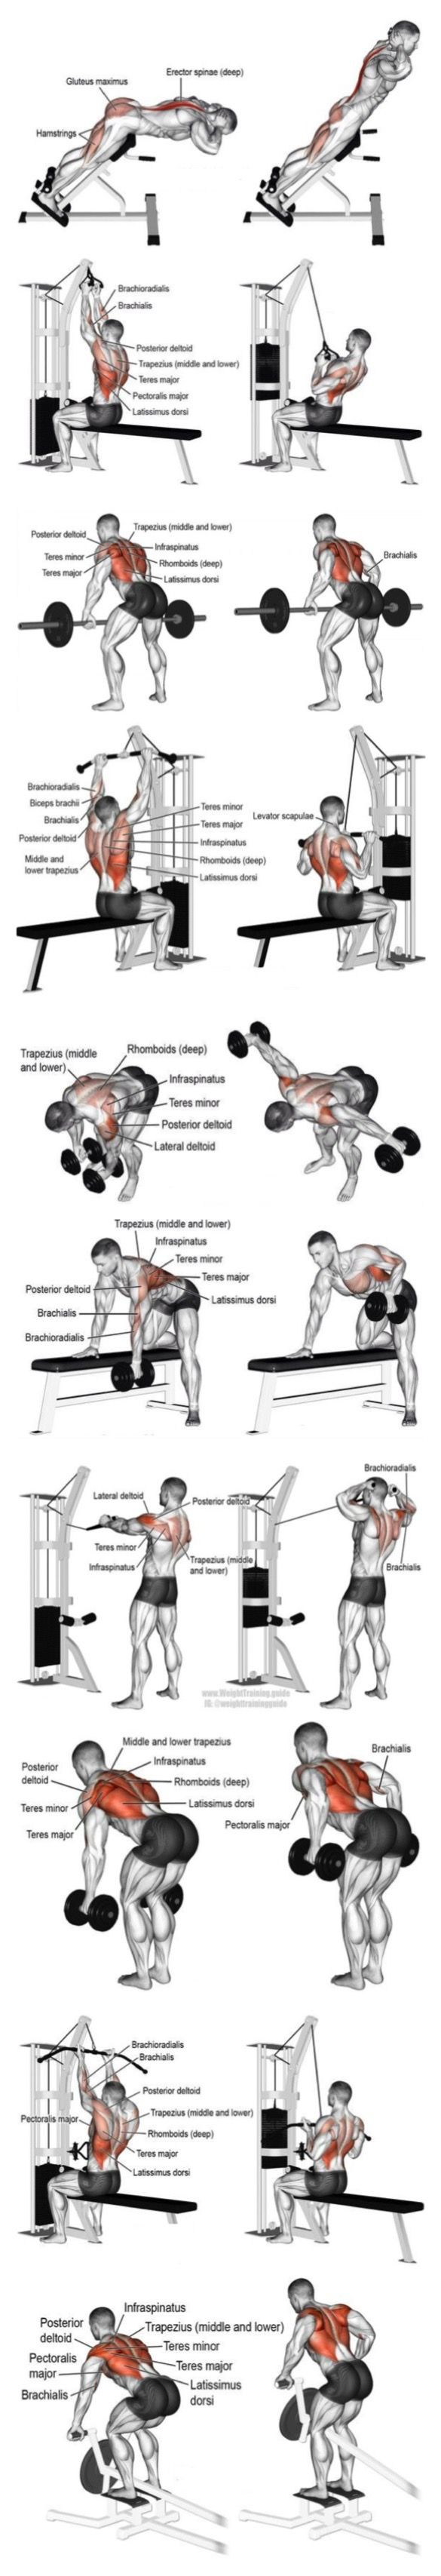 Schiena Body Building Pinterest Workout Exercises And Gym